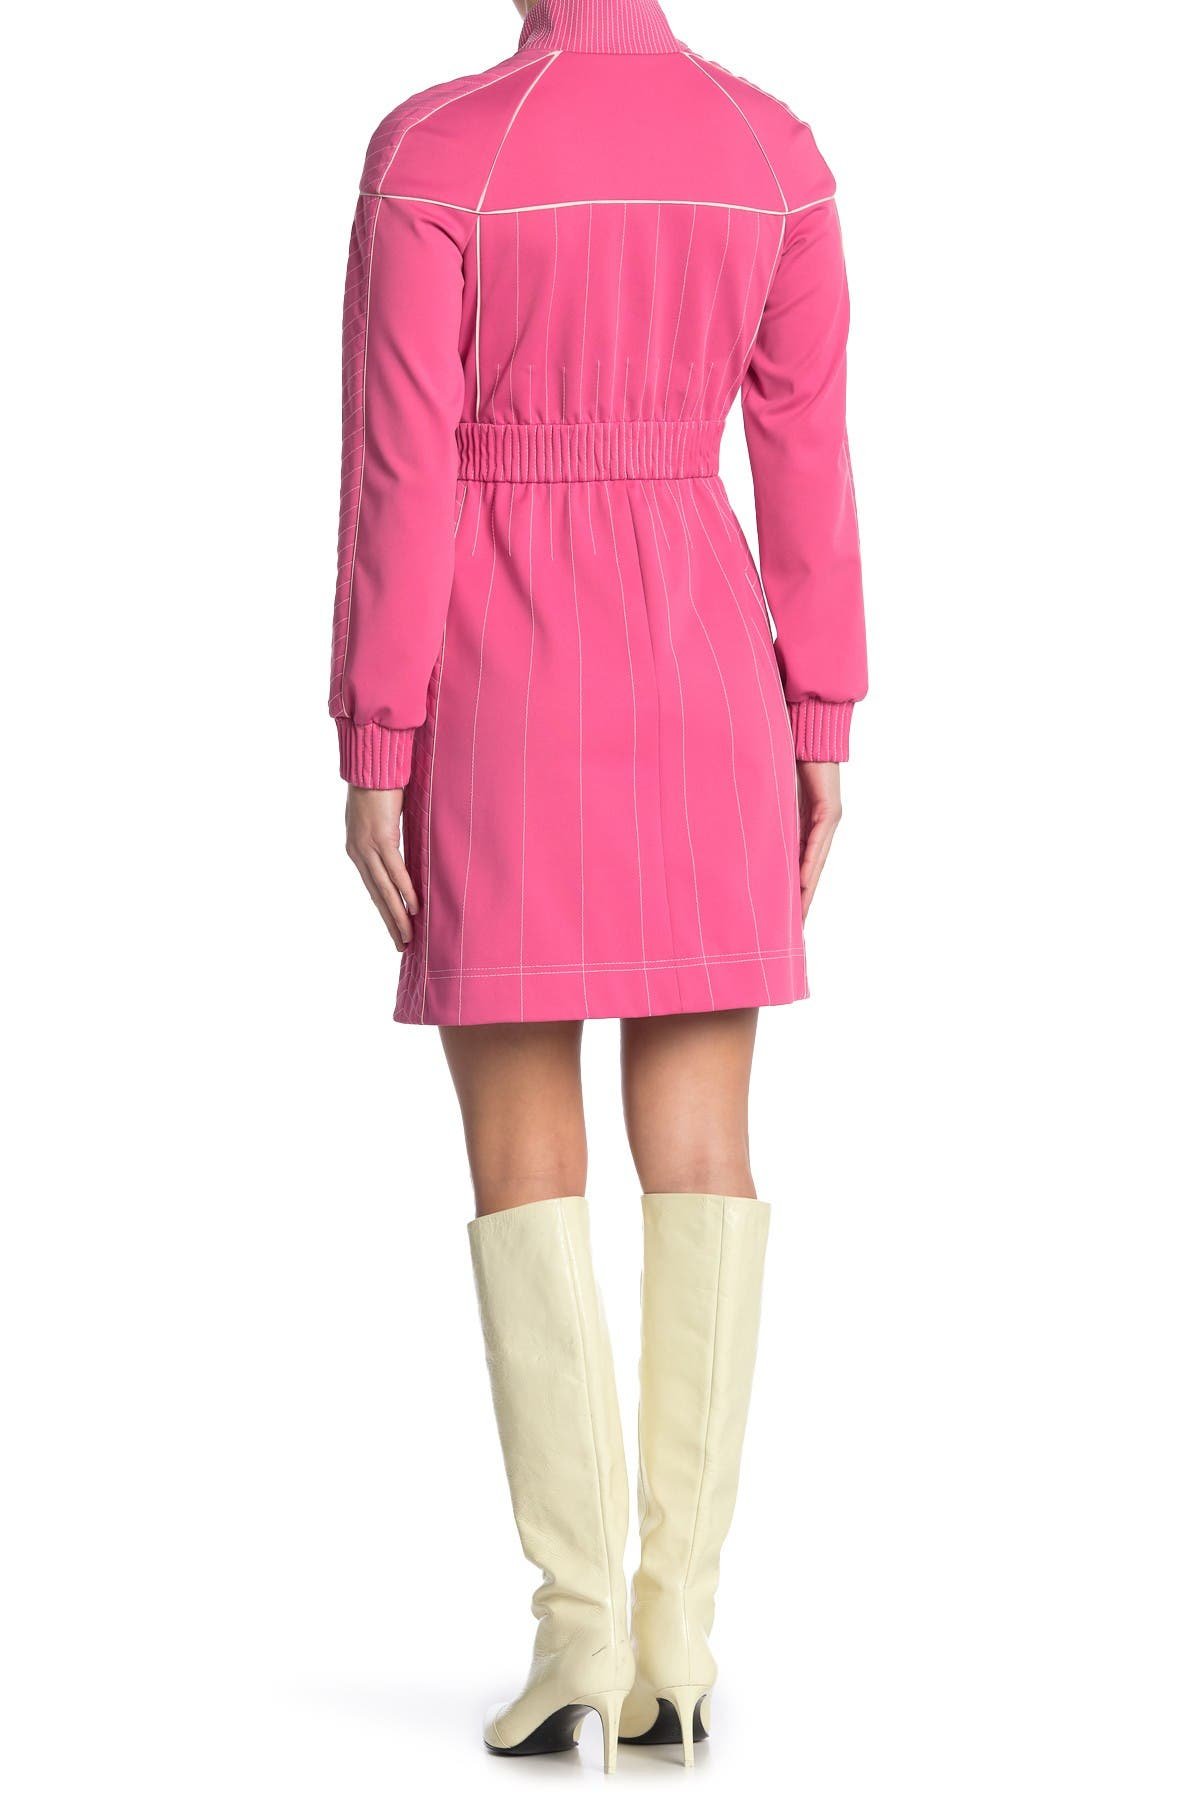 Image of Valentino Long Sleeve Zip Track Dress